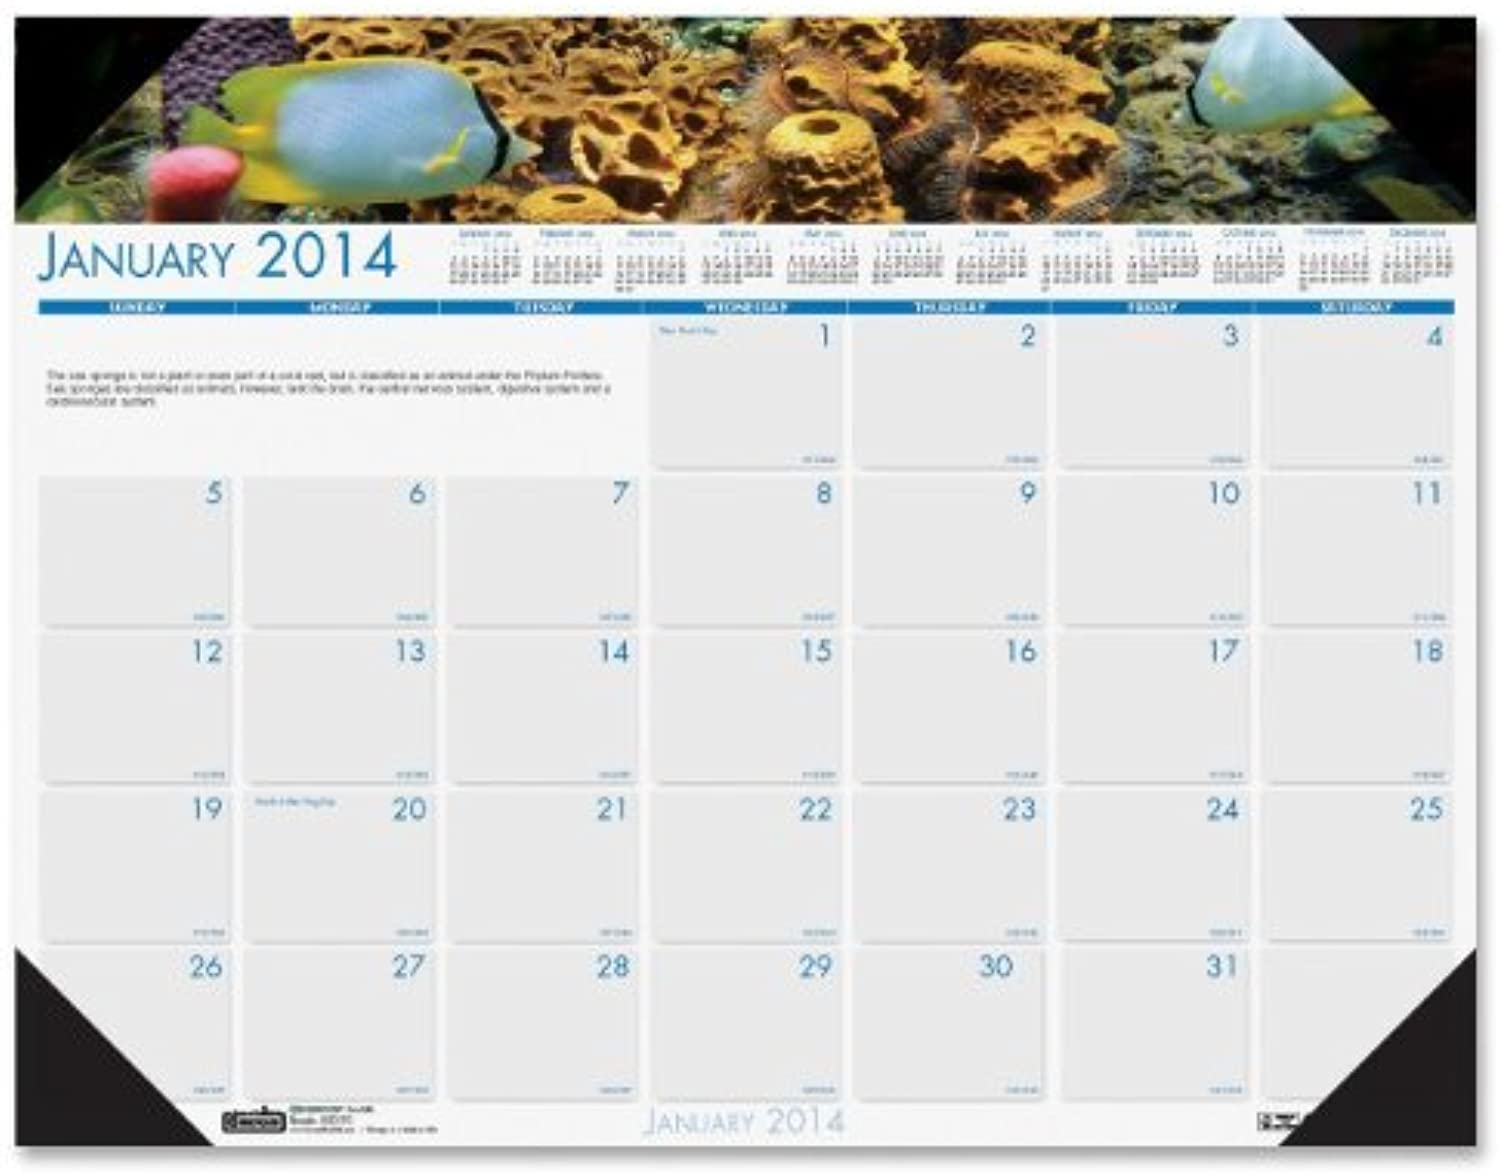 House of Doolittle Earthscapes Sea Life Desk Pad Calendar 12 Months January 2014 to December 2014, 22 x 17 Inches, Farbe Photo, Recycled (HOD193) by House of Doolittle B0141N39ZE | Spielzeugwelt, spielen Sie Ihre eigene Welt